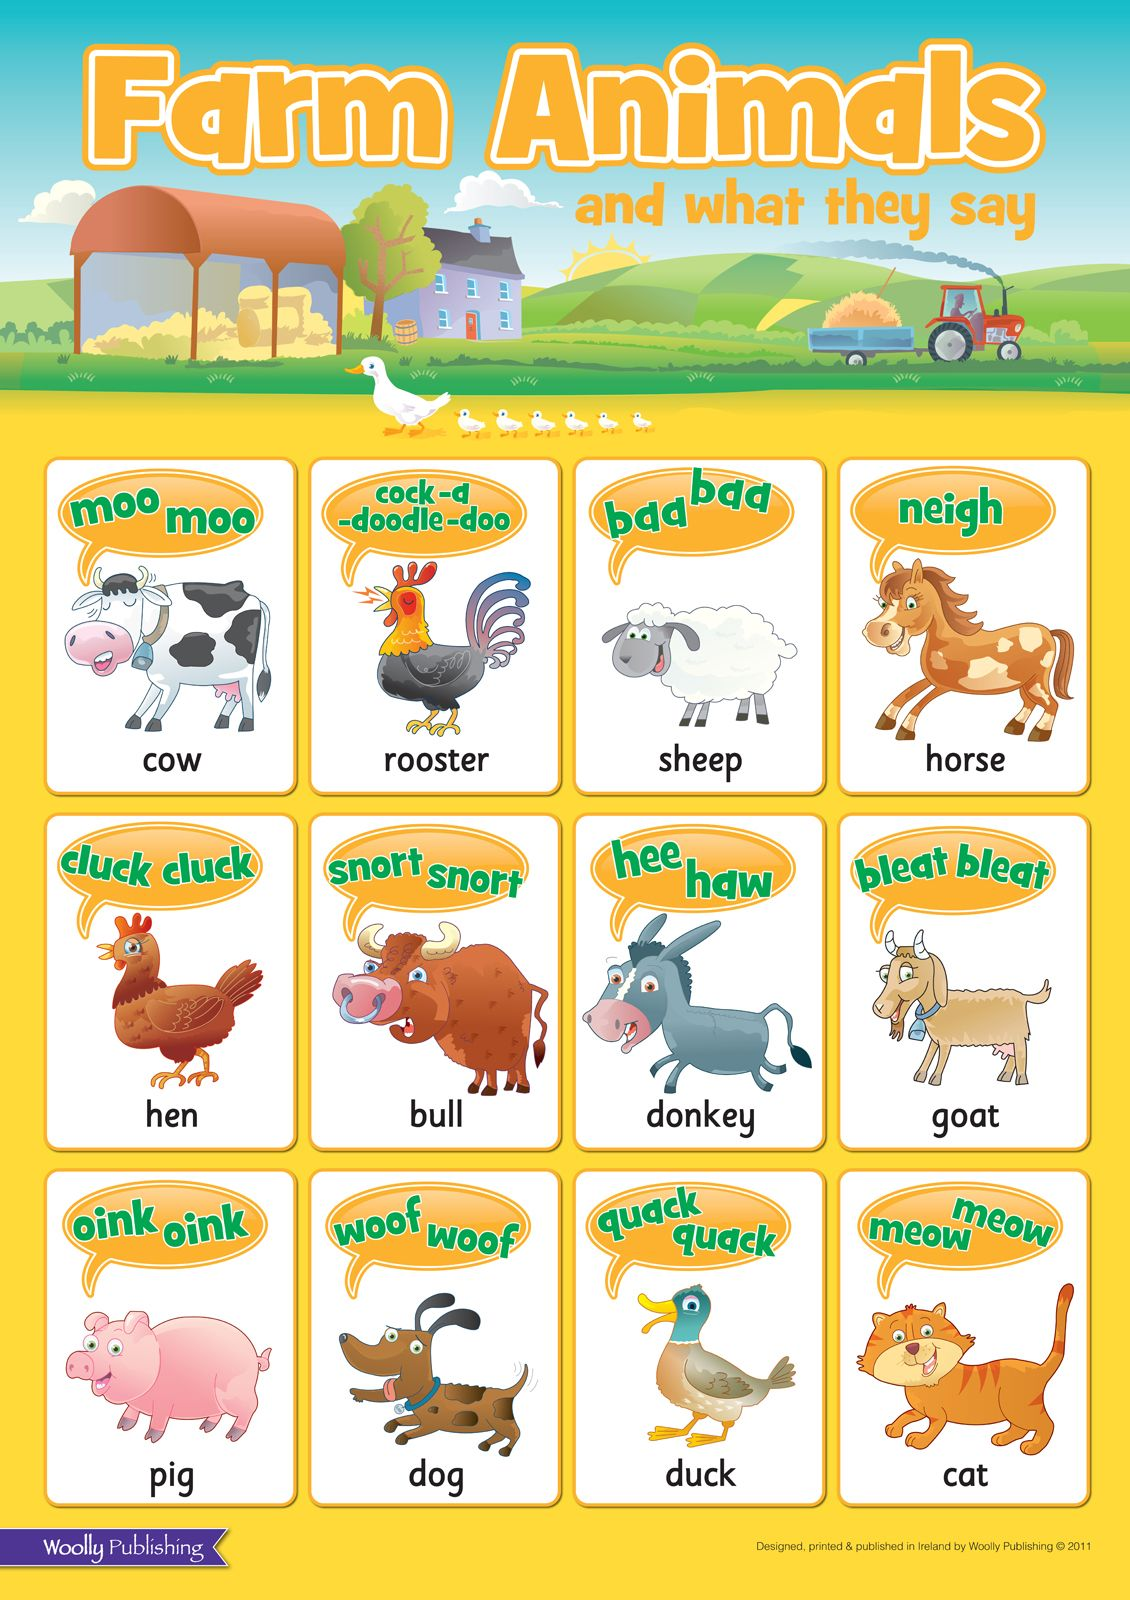 Farm animals and what they say wall chart ideal for bedrooms  playrooms have great fun making the animal noises also rh pinterest